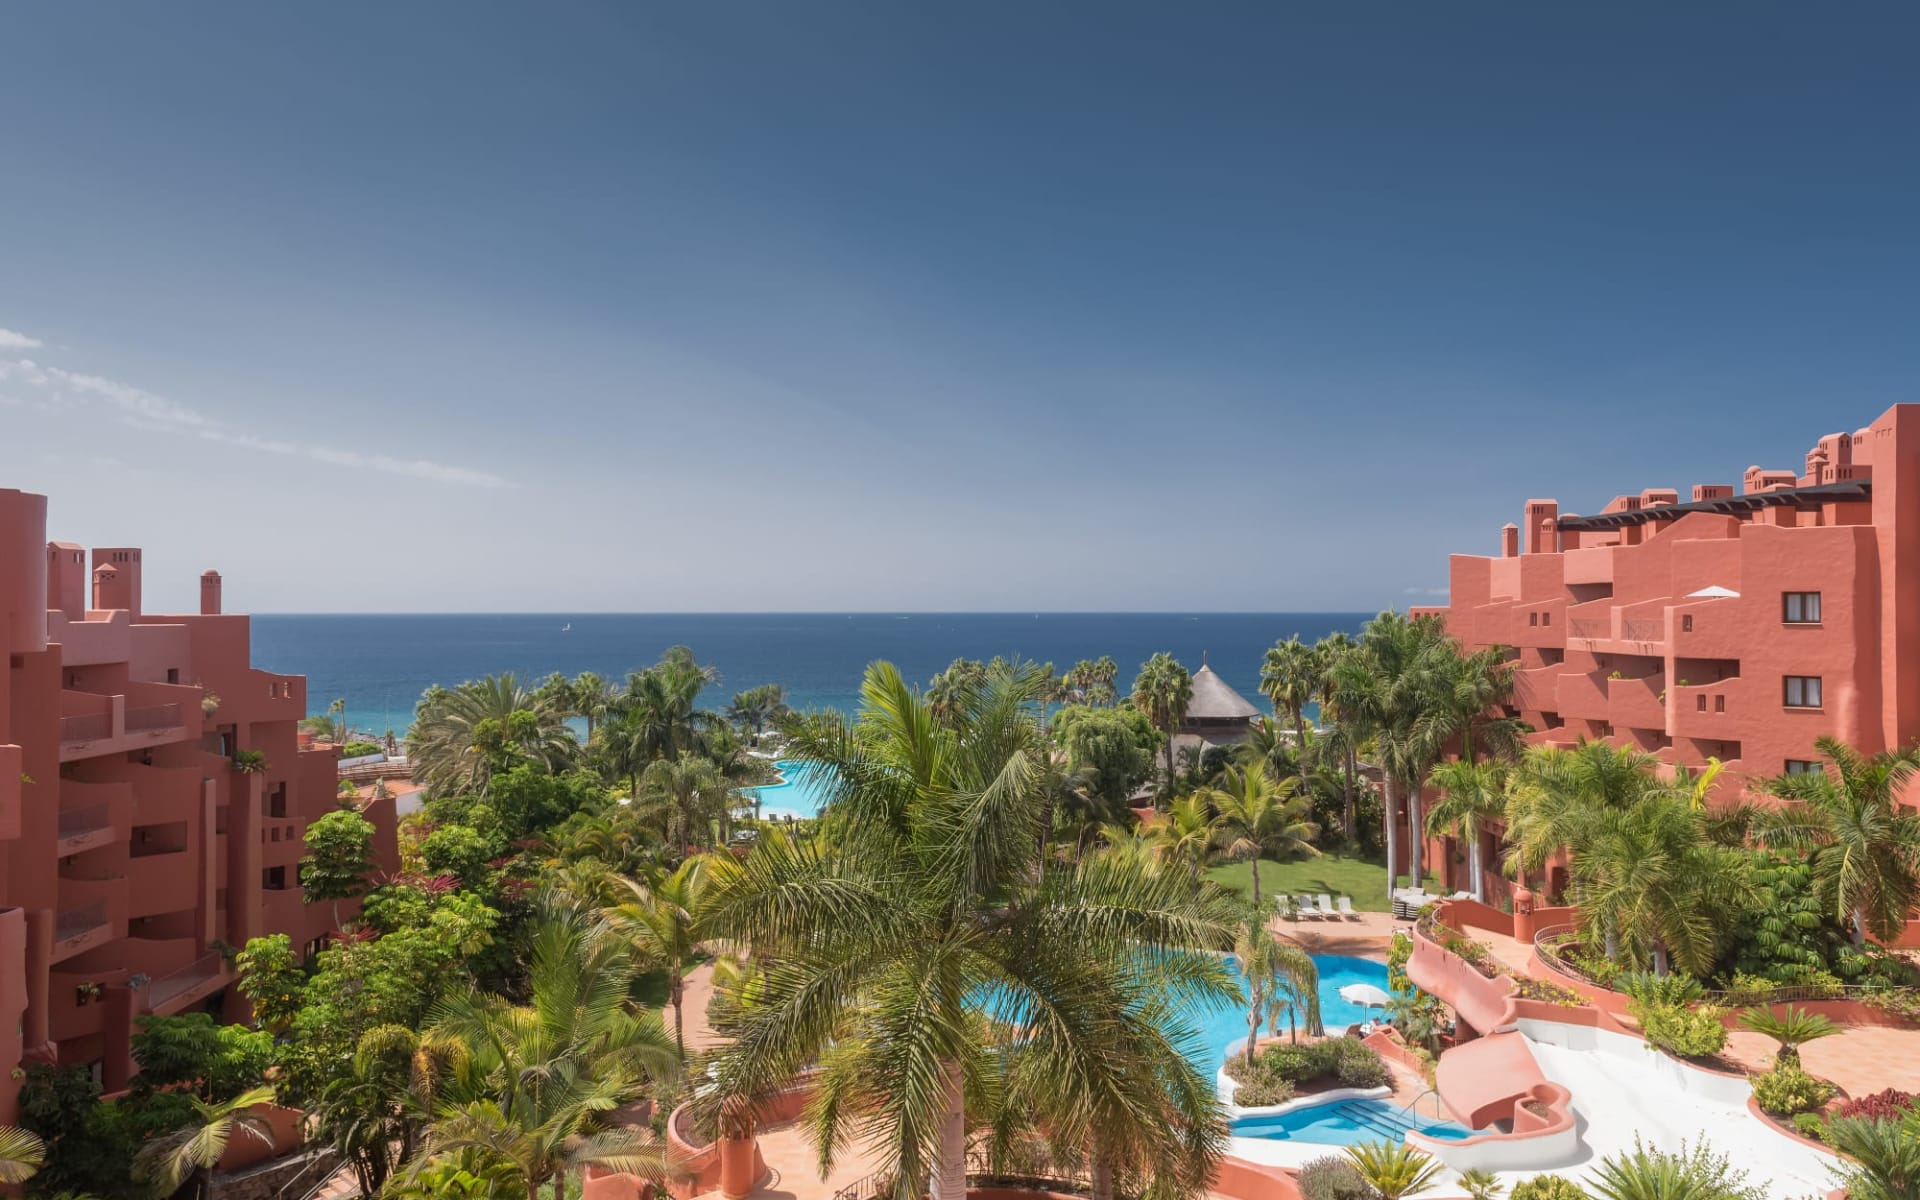 Sheraton La Caleta Resort & Spa in Teneriffa: sheTCISIgr-265897-Club Terrace Room View-